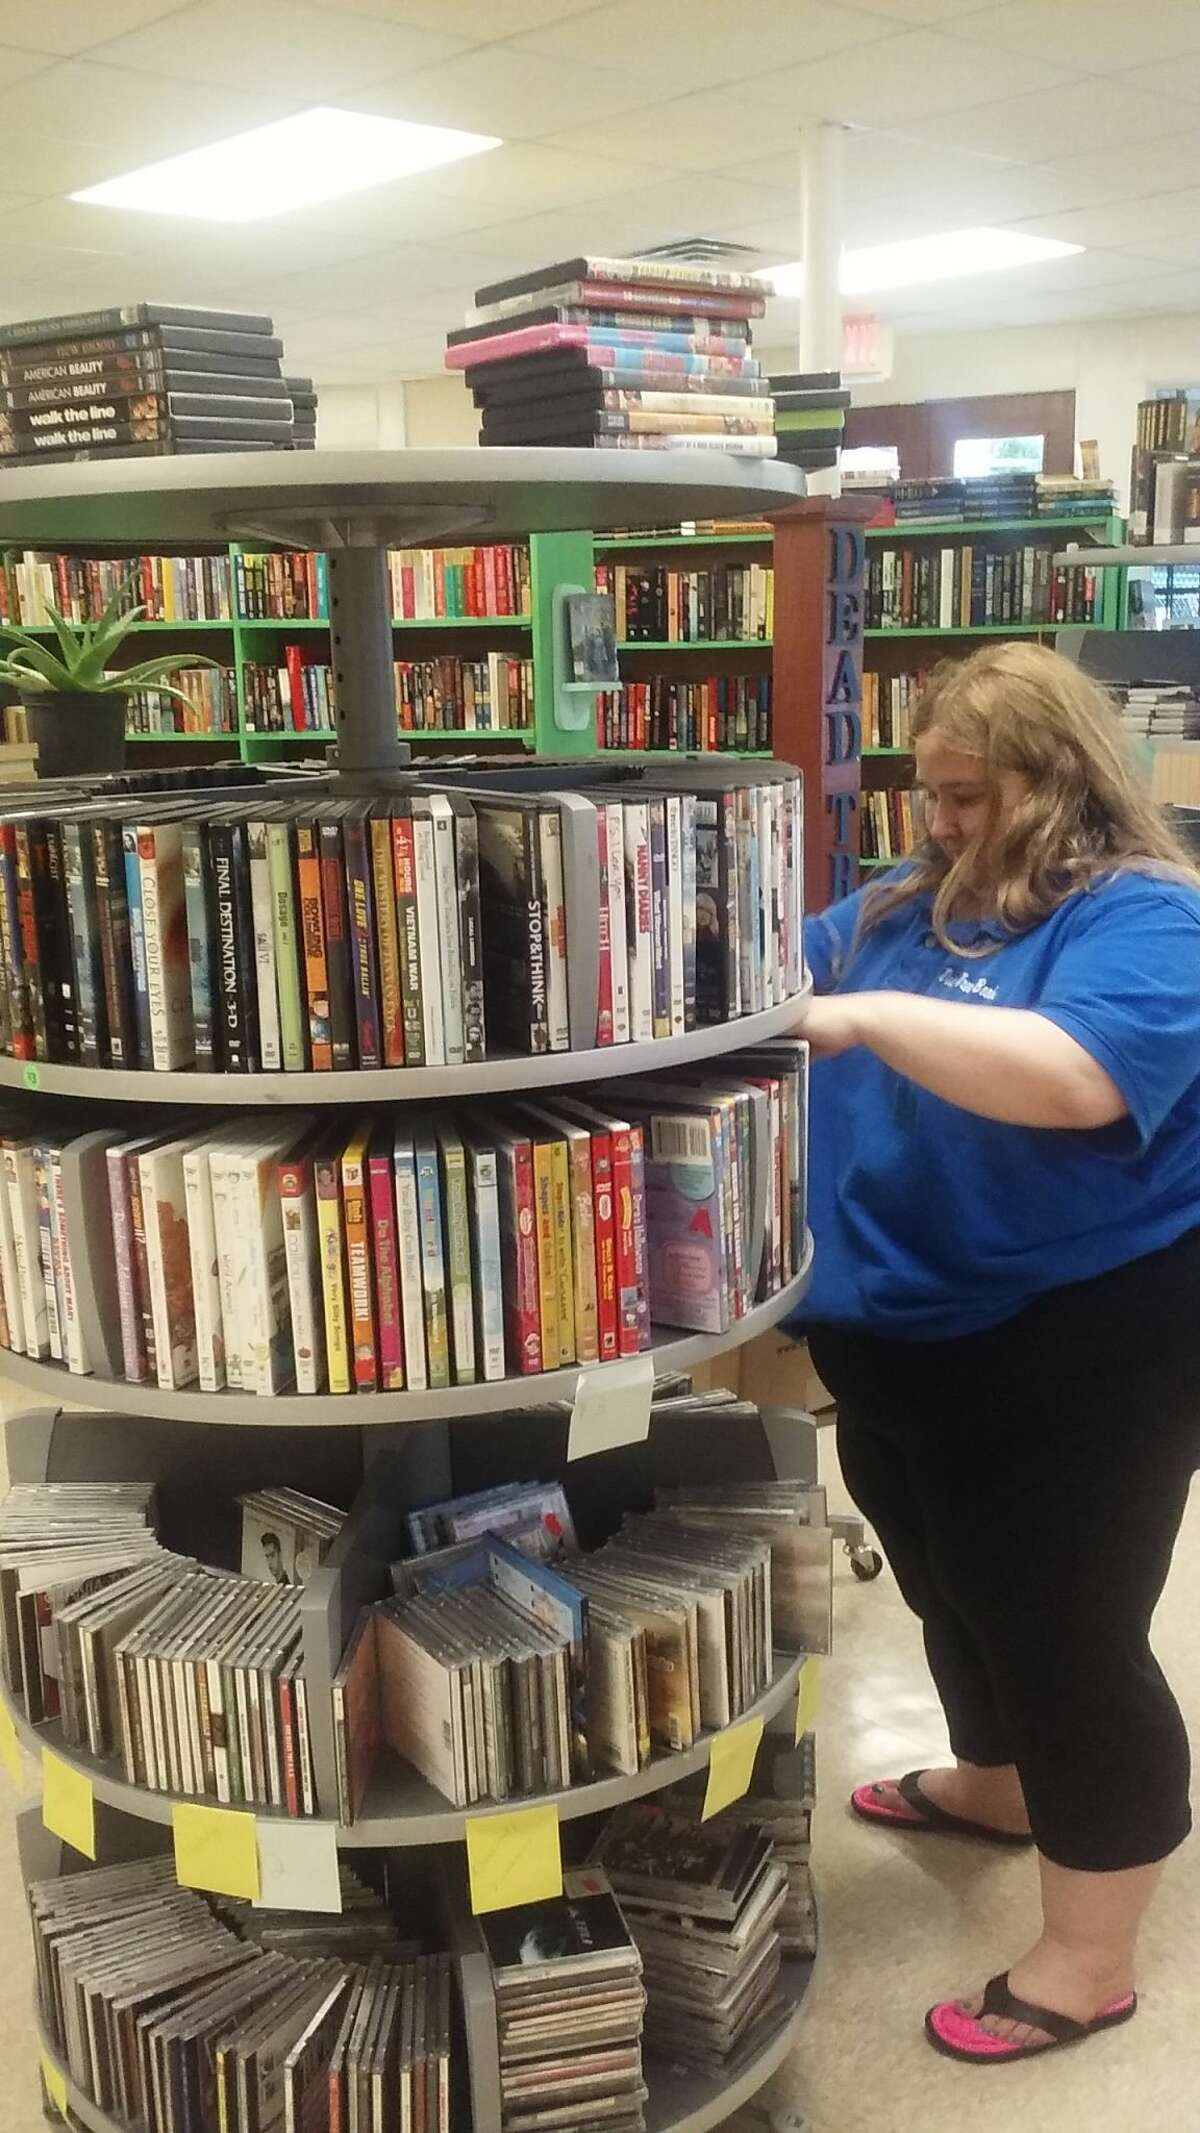 Dead Tree Books, the only bookstore on San Antonio's South Side, opened April 1 at 5645 S. Flores St., at the intersection of S. Flores Street and E. Southcross Boulevard.